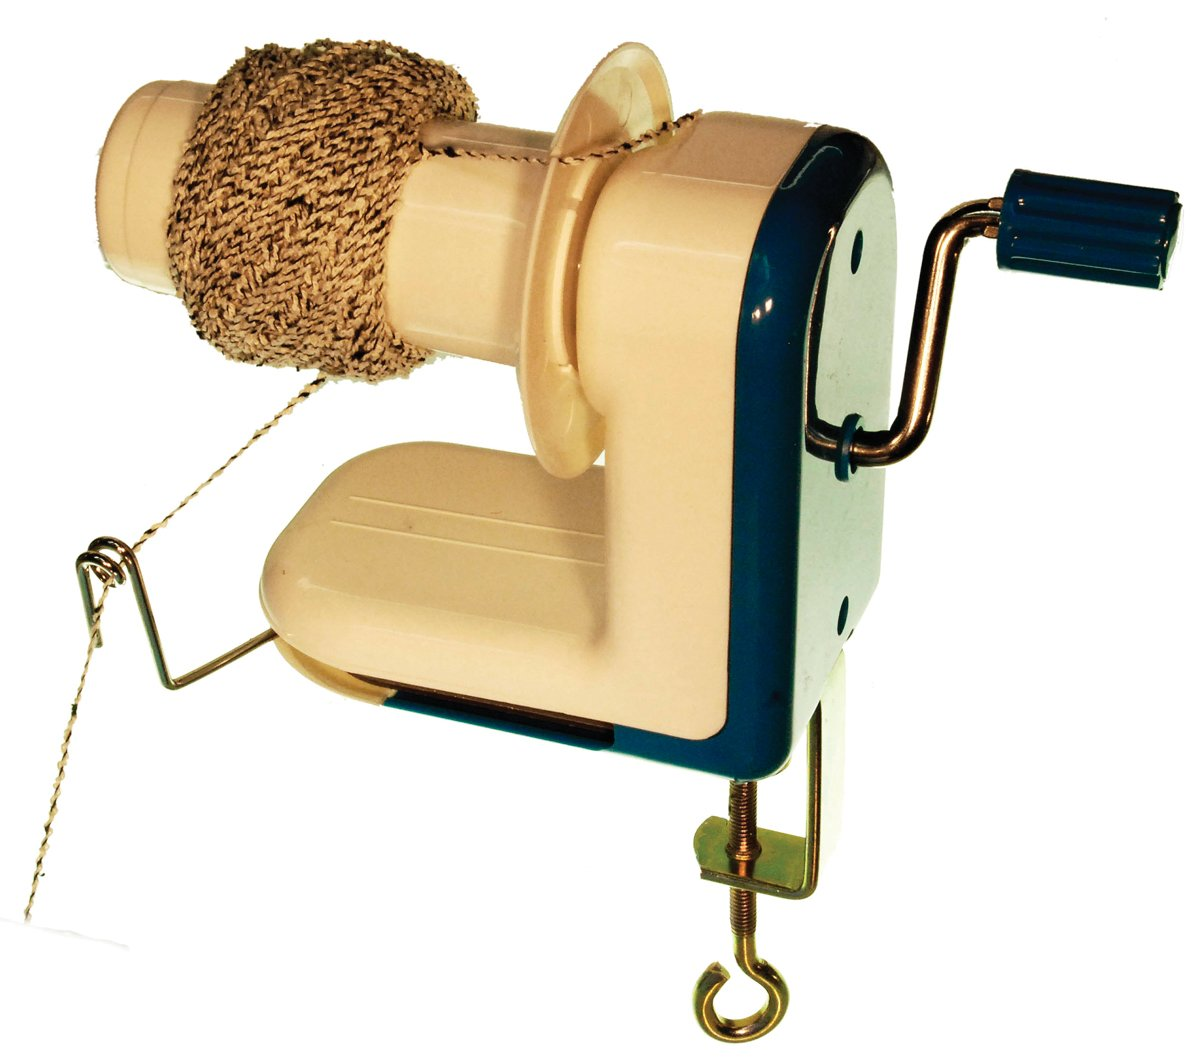 Lacis In-Line Yarn Ball Winder Notions - In Network MO05